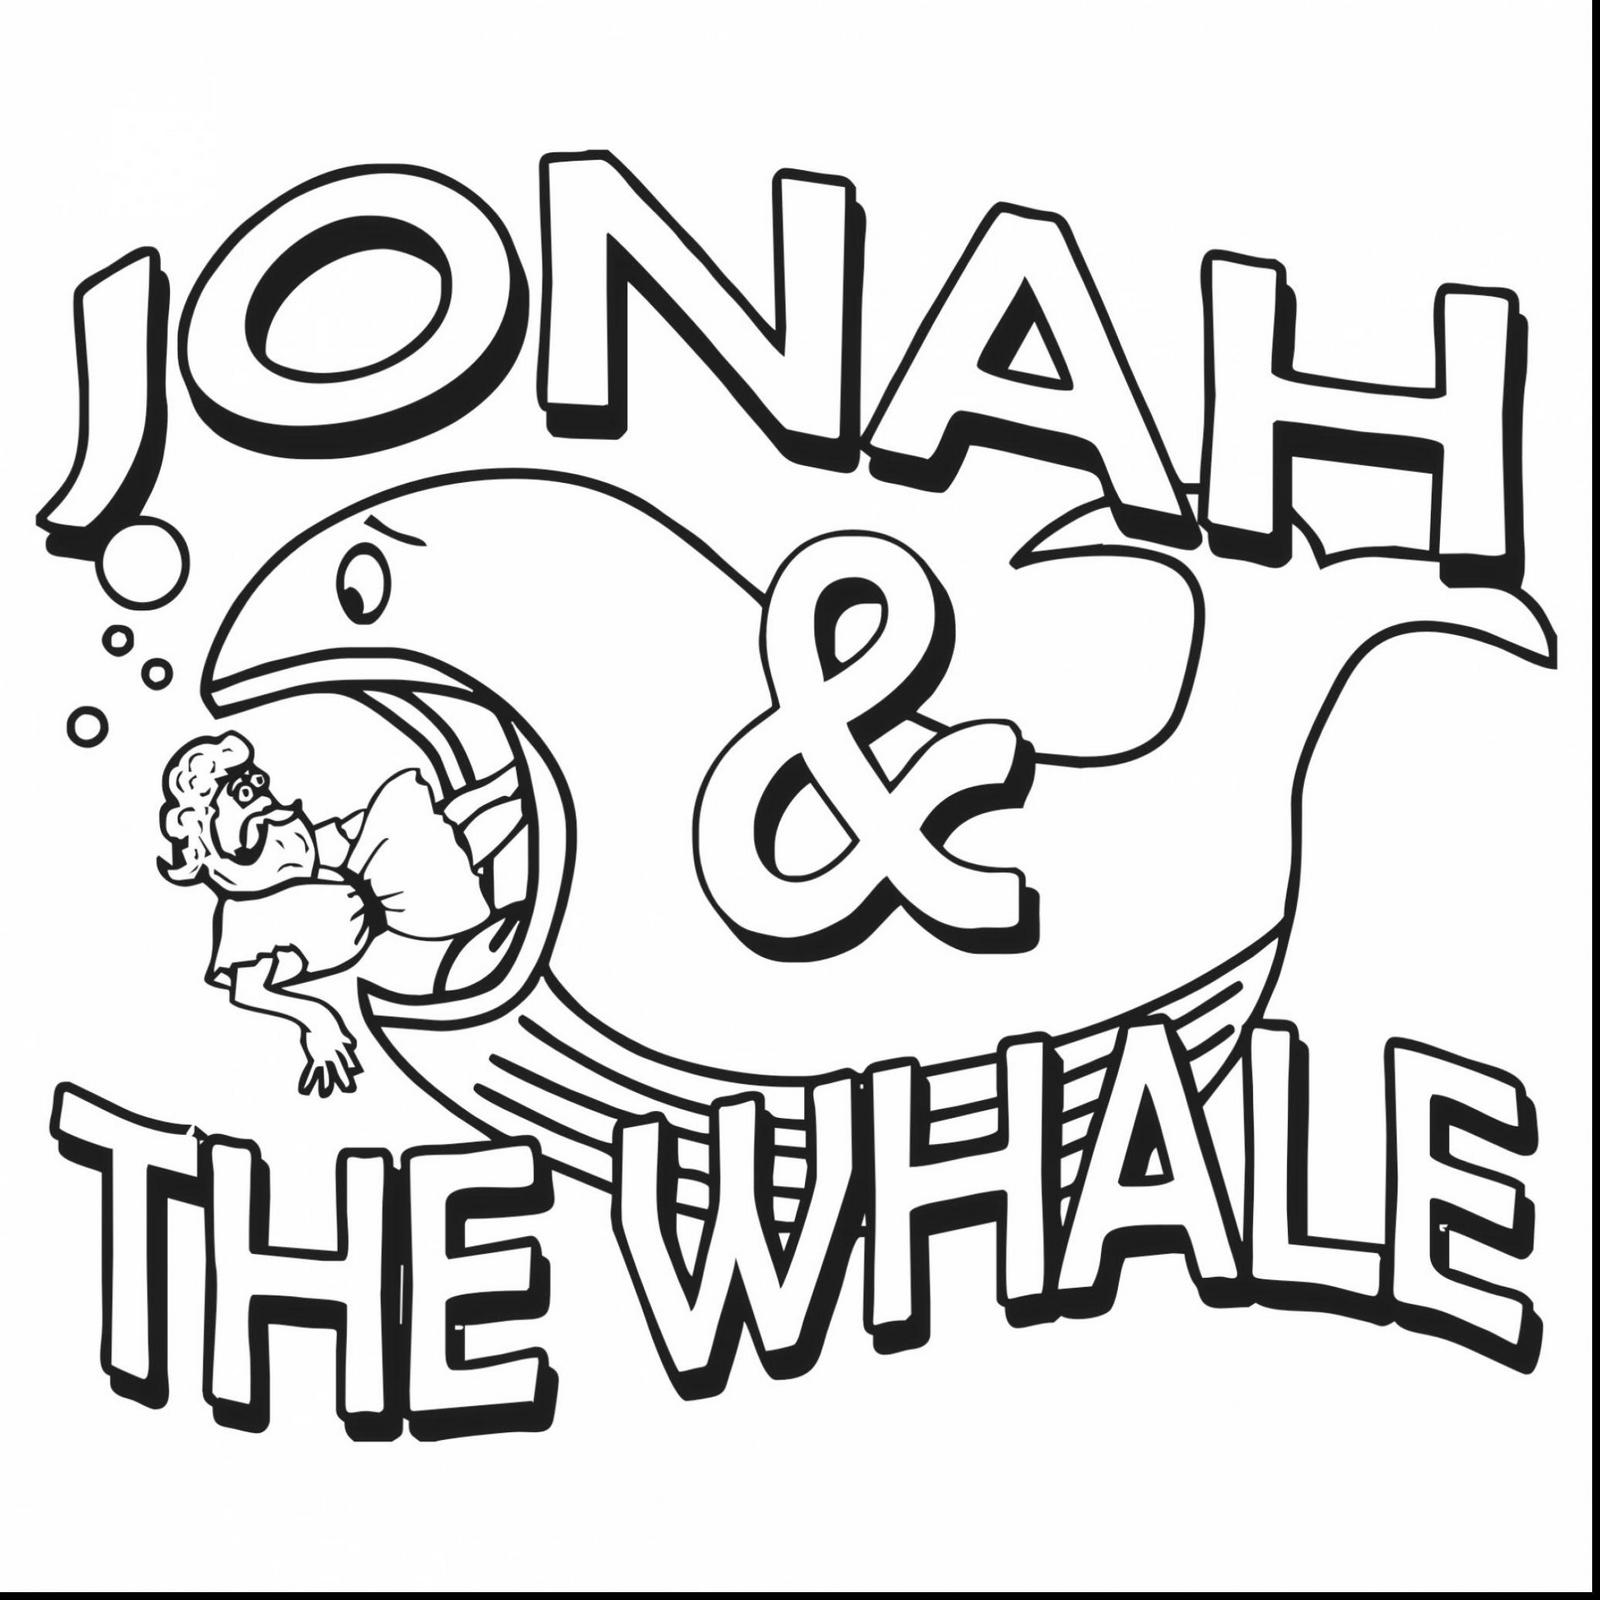 Jonah And The Whale Coloring Book For Kids